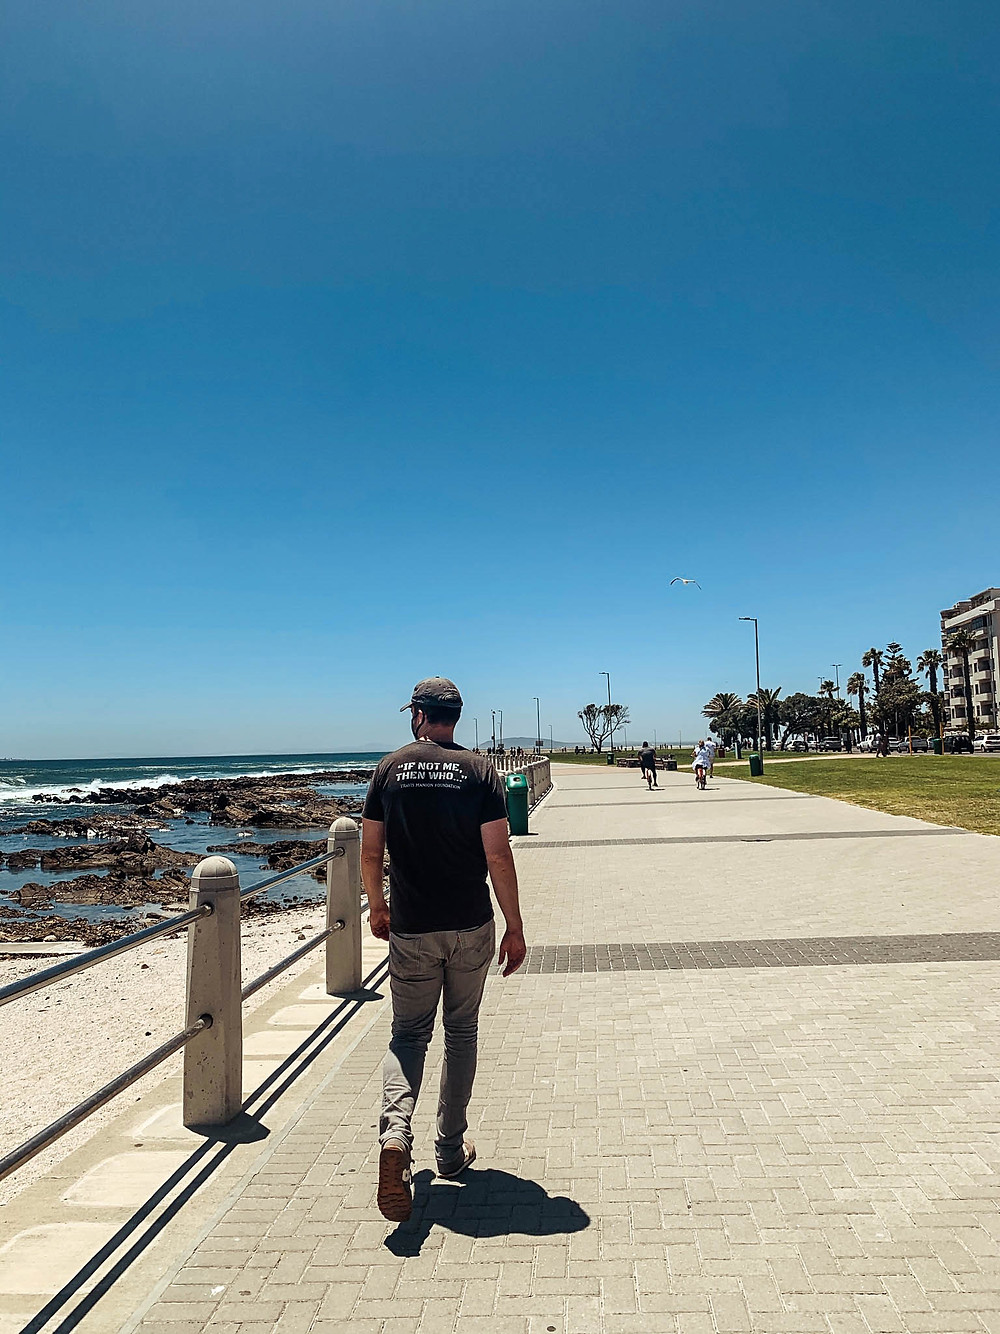 Taking in the ocean views along the Sea Point Promenade